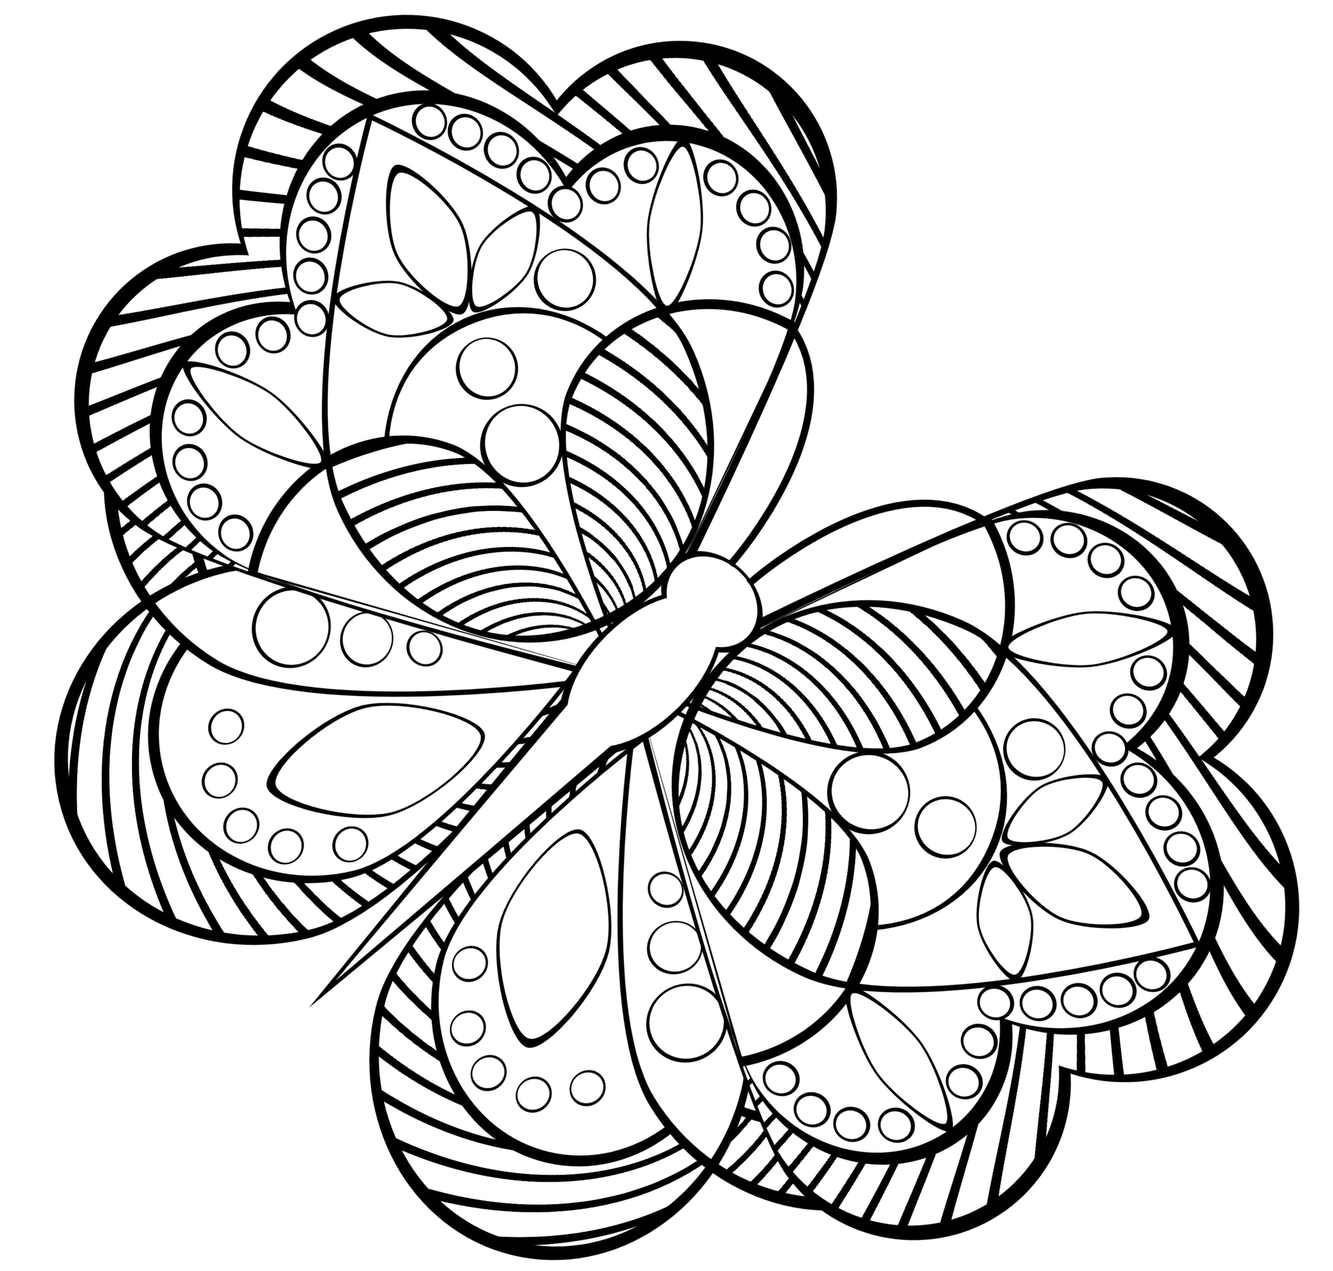 geometric coloring pages coloring pages for adults geometric image and save image